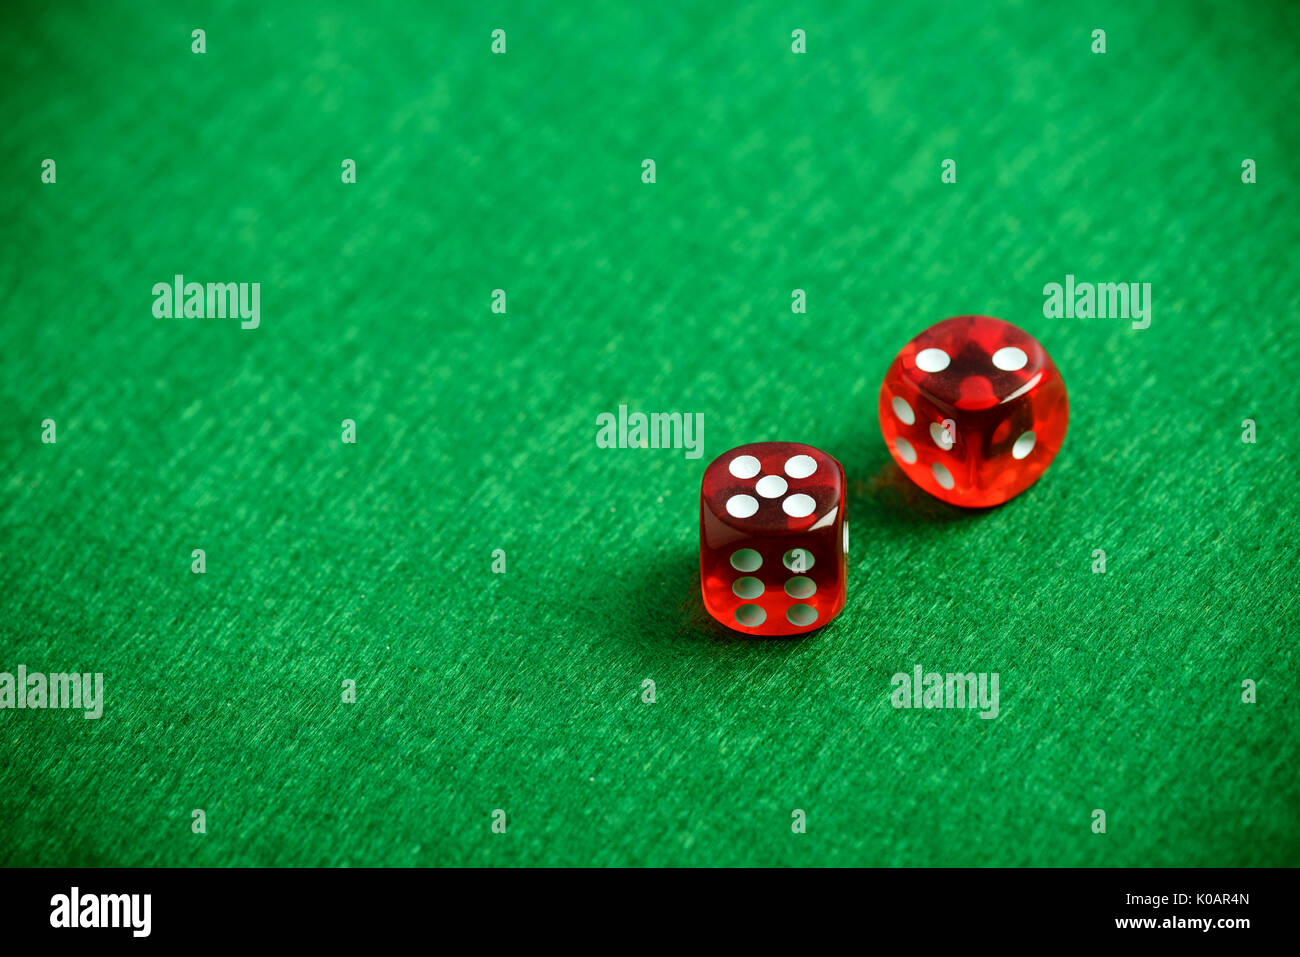 Red poker dices on casino table background - Stock Image